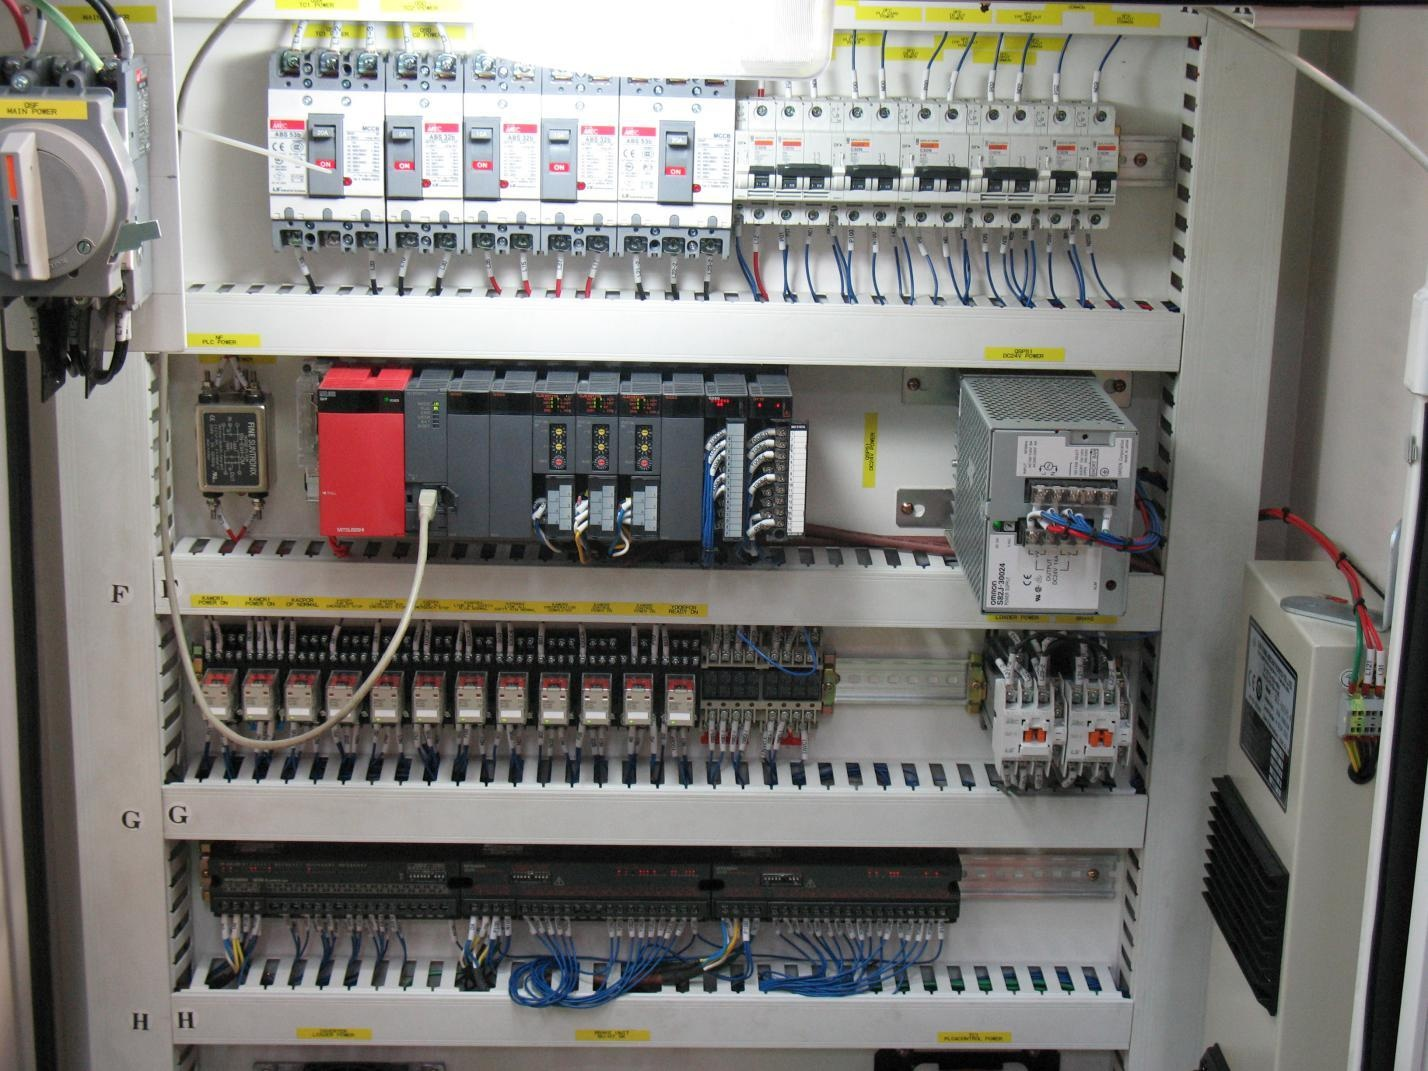 What Are The Types Of Control Panels Used In Industries And All Different Electric Circuits There Electrical Industry For Purposes These Responsible Holding Meters